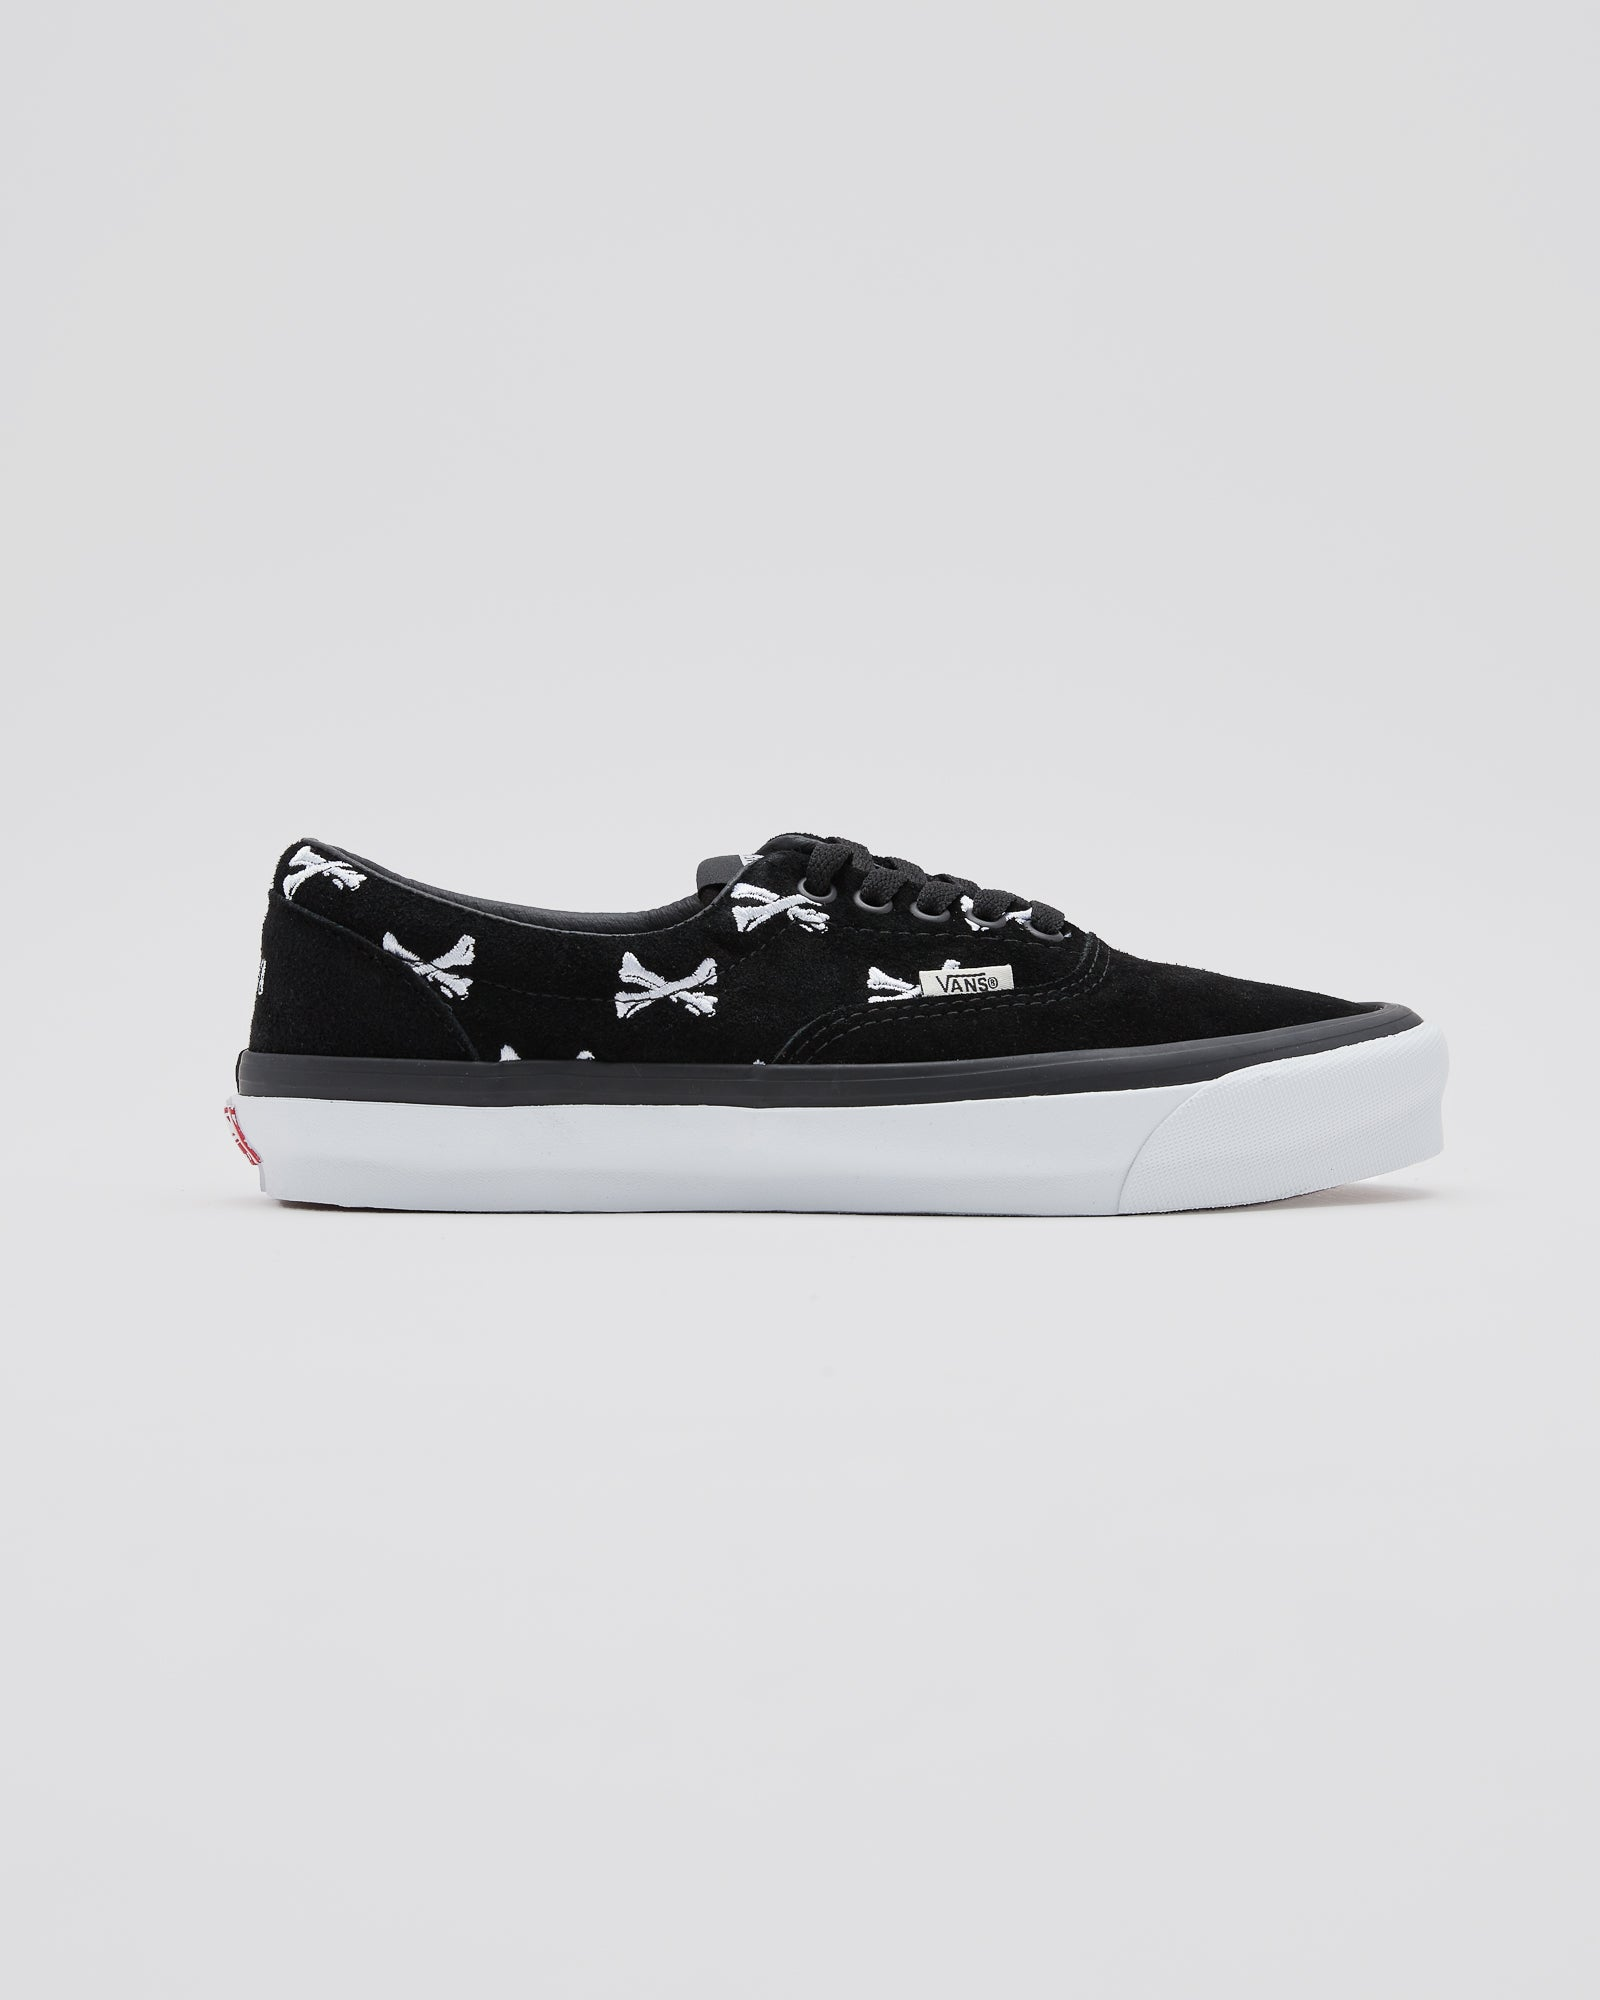 Vans X Wtaps OG Era in Bones/Black